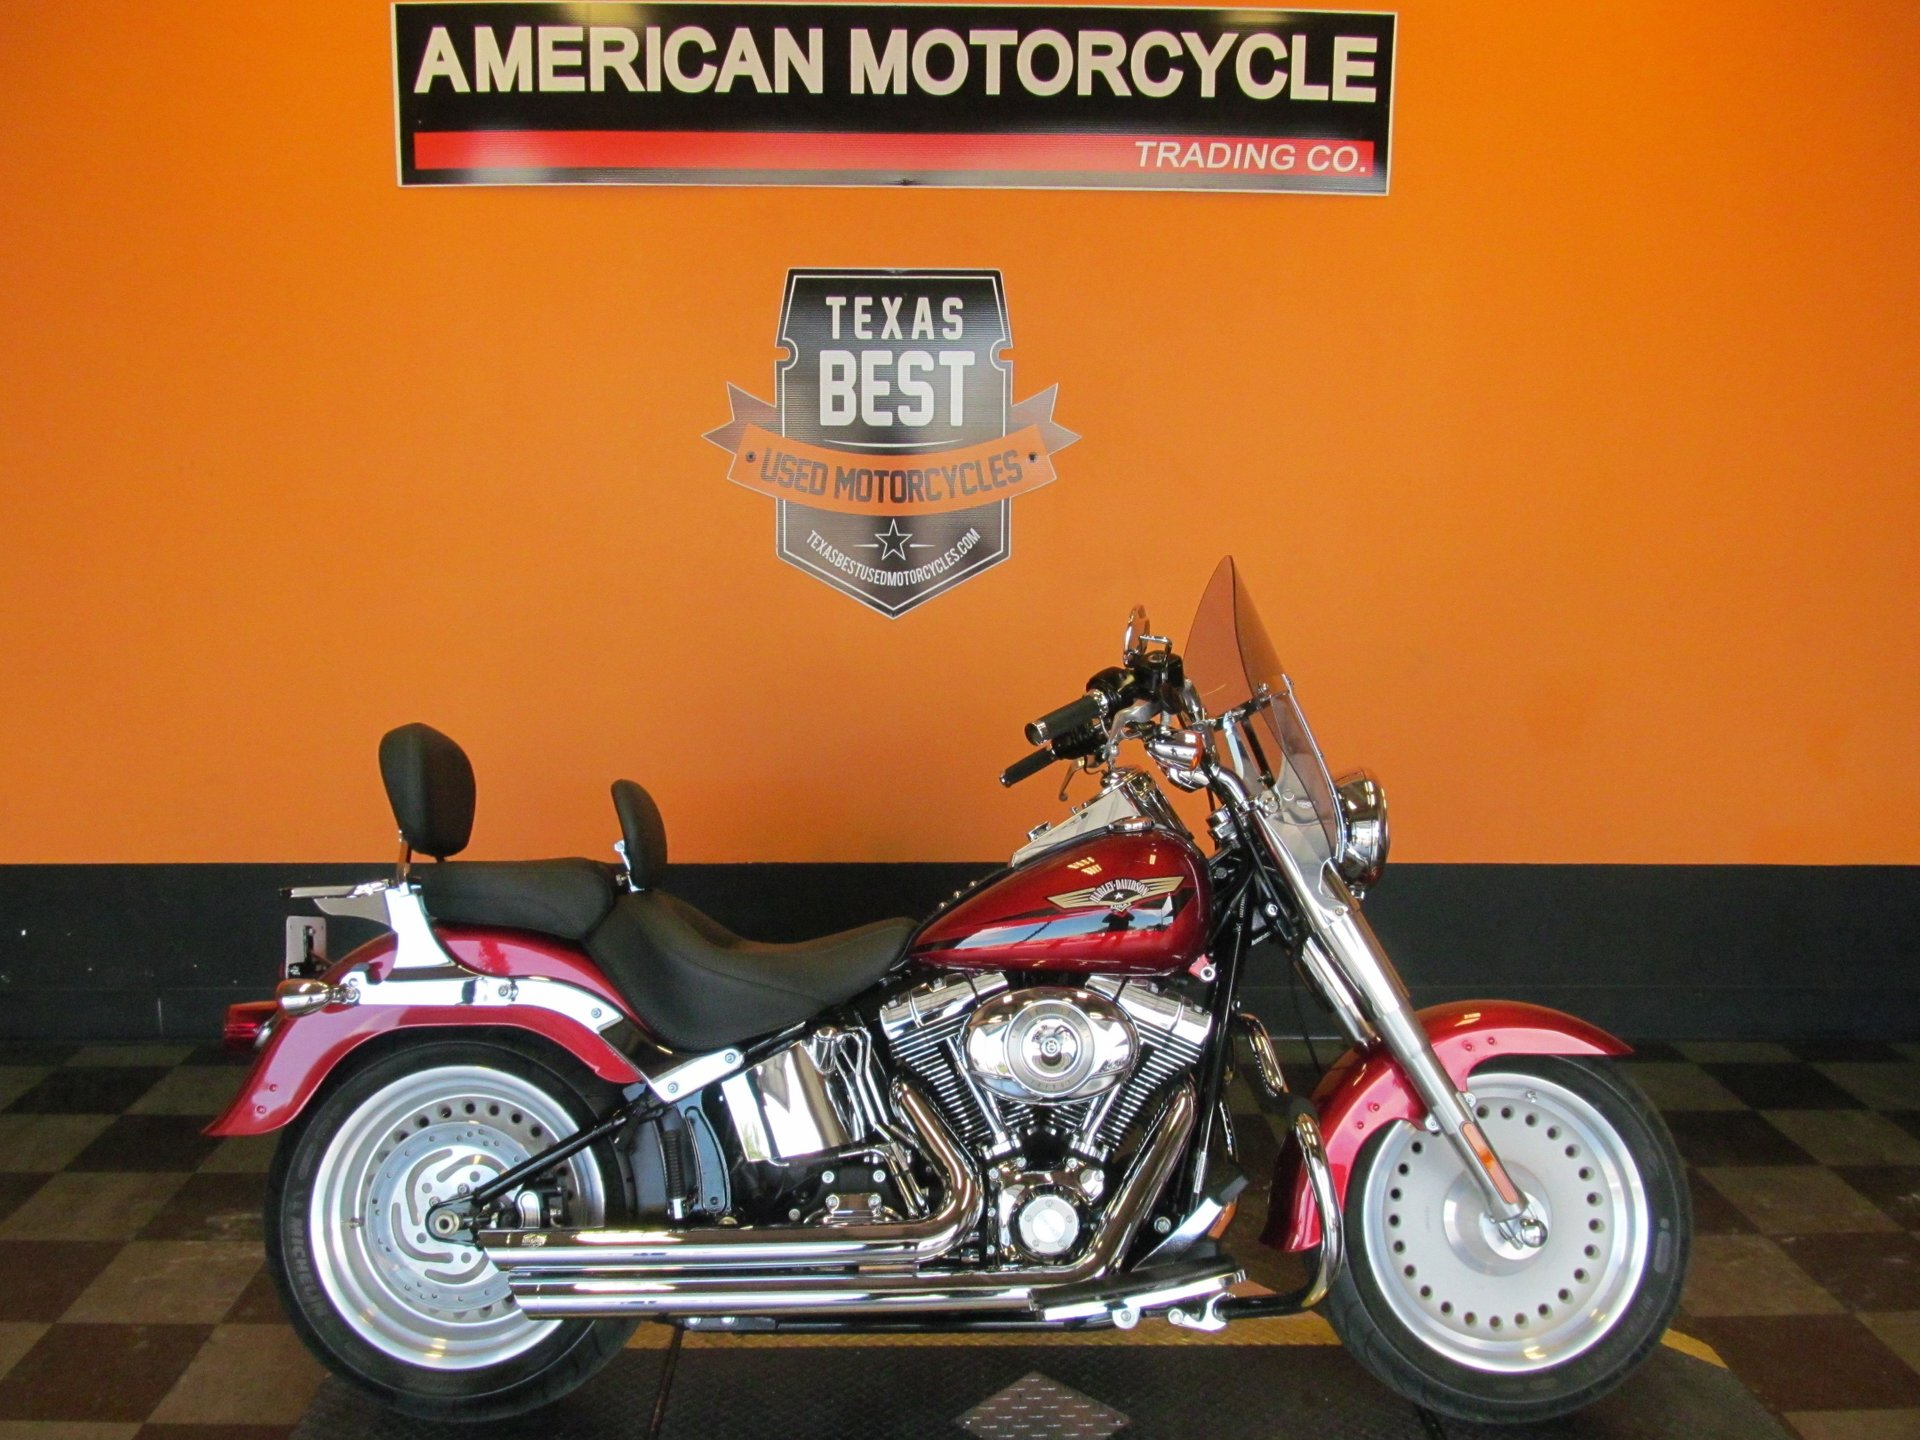 2008 harley davidson softail fat boy flstf